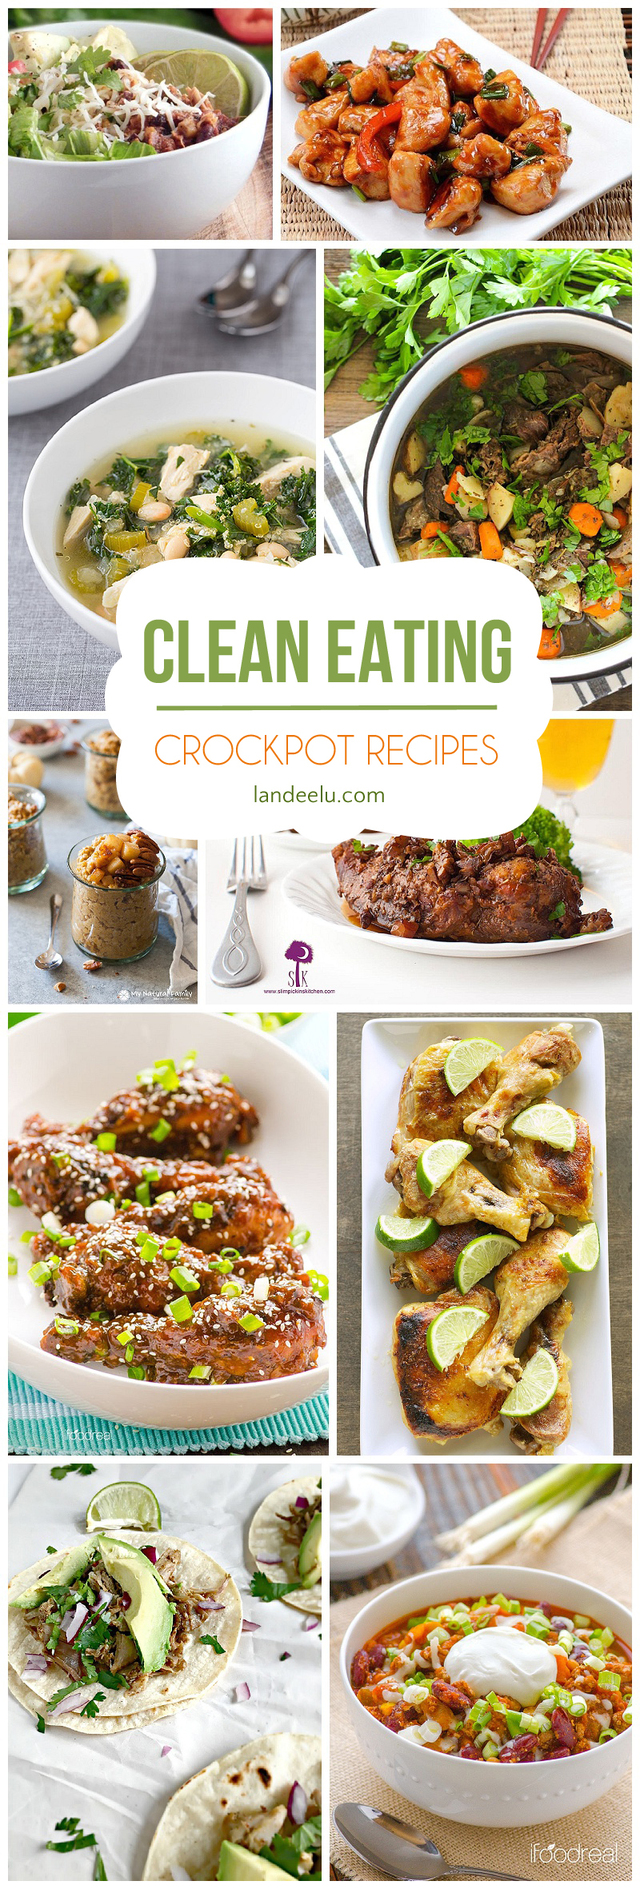 Delicious Clean Eating Crockpot Recipes